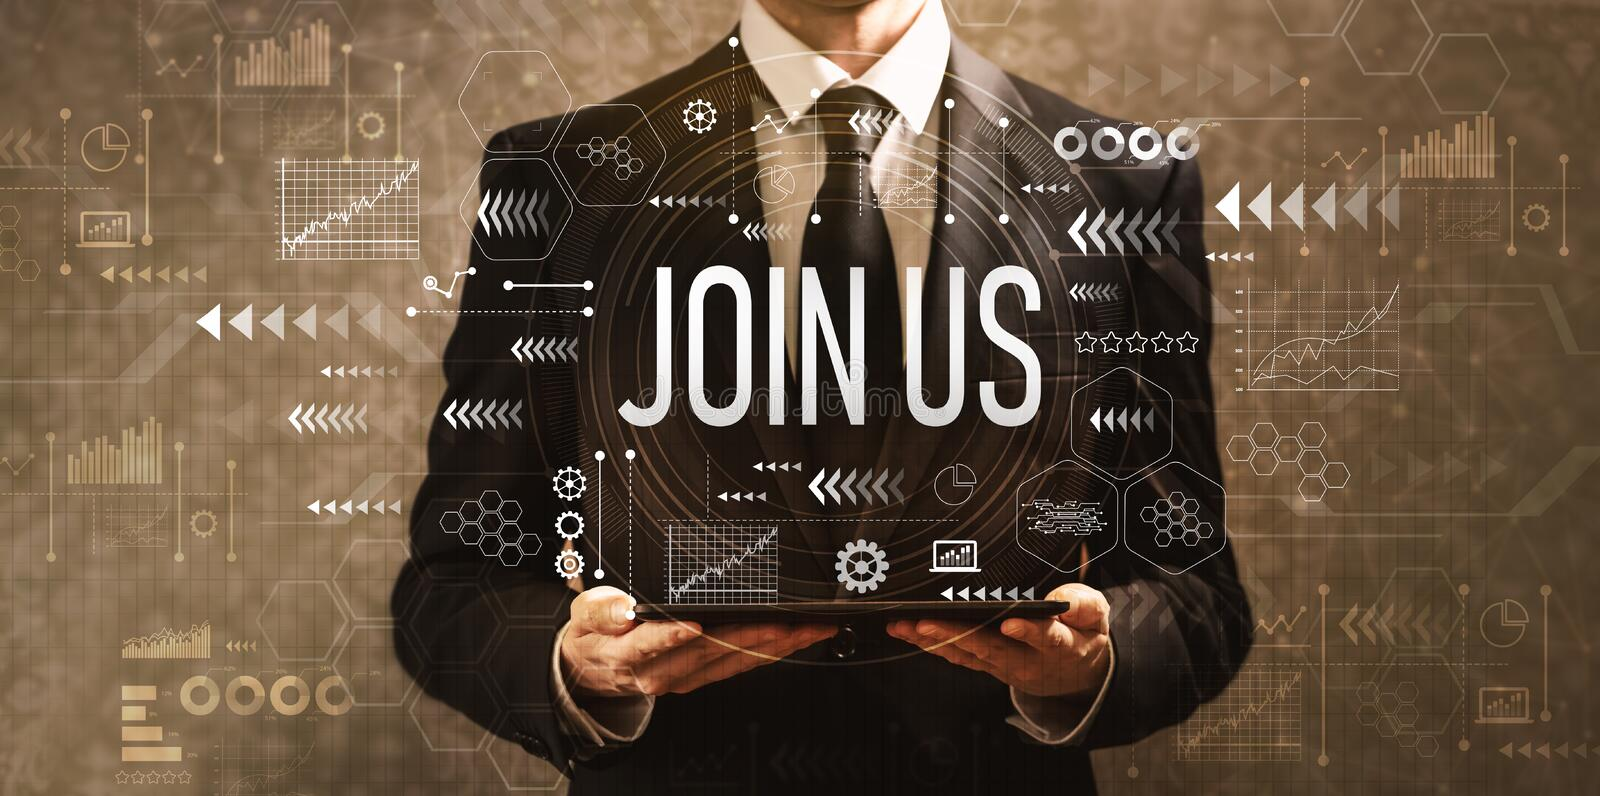 Join us with businessman holding a tablet computer stock photos